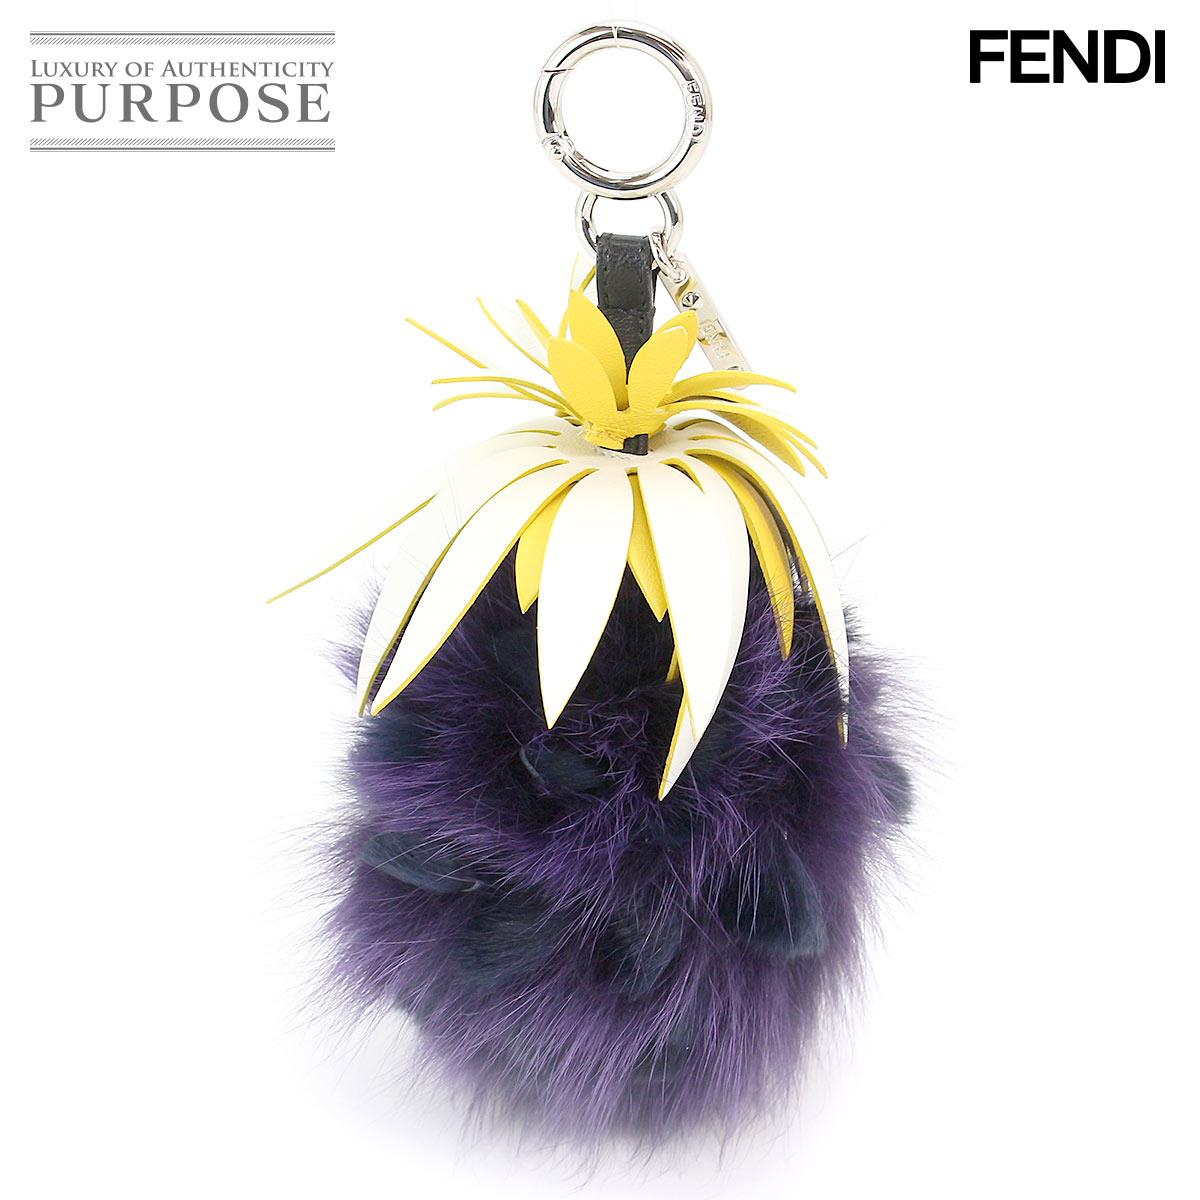 40023eb99bca  unused display  Fendi FENDI bag charm pineapple Fox fur leather purple  white yellow  used  brand